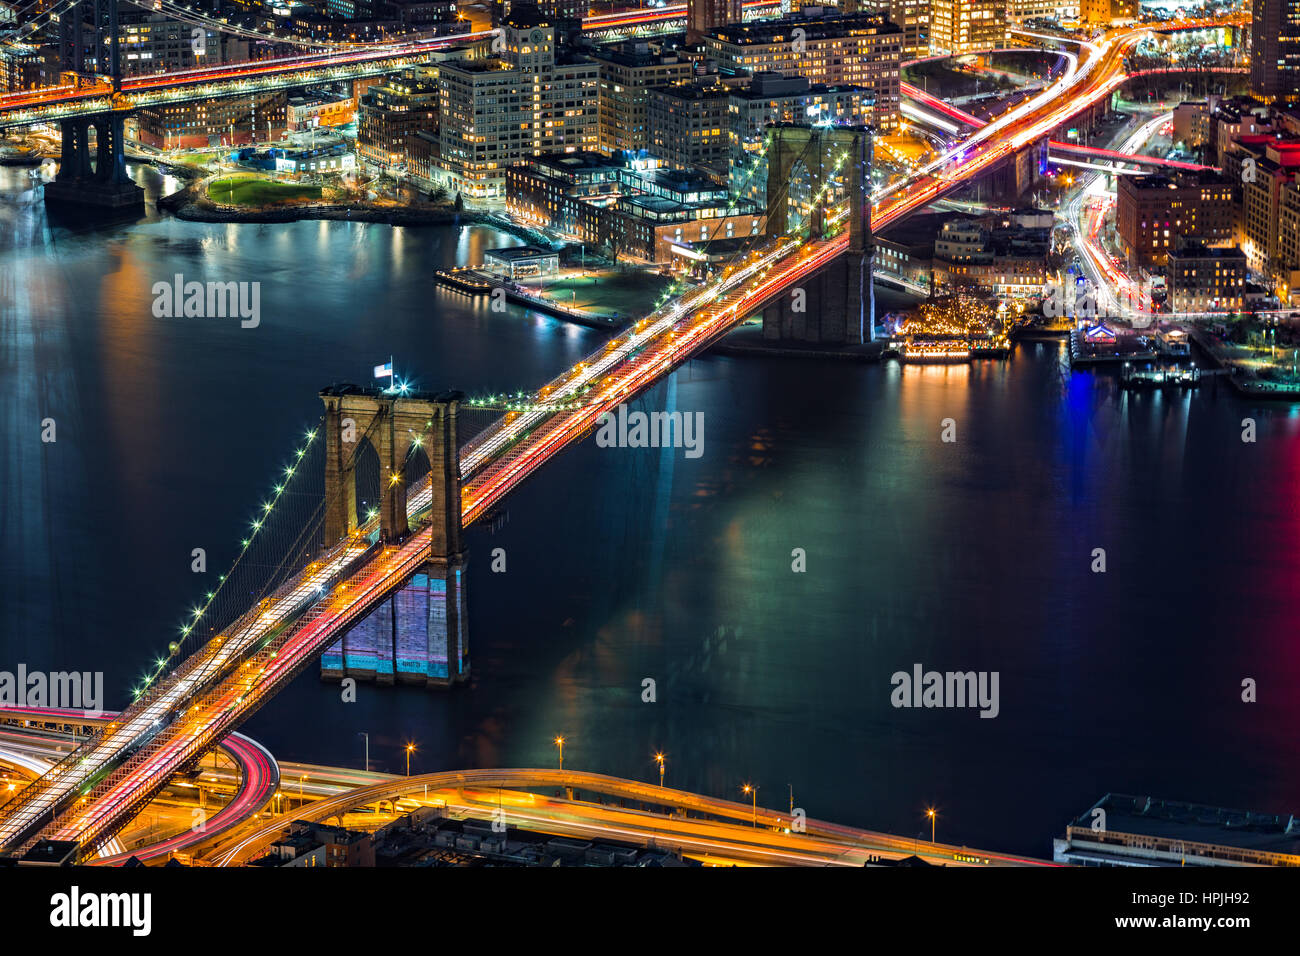 Aerial view of Brooklyn Bridge by night, in New York City - Stock Image